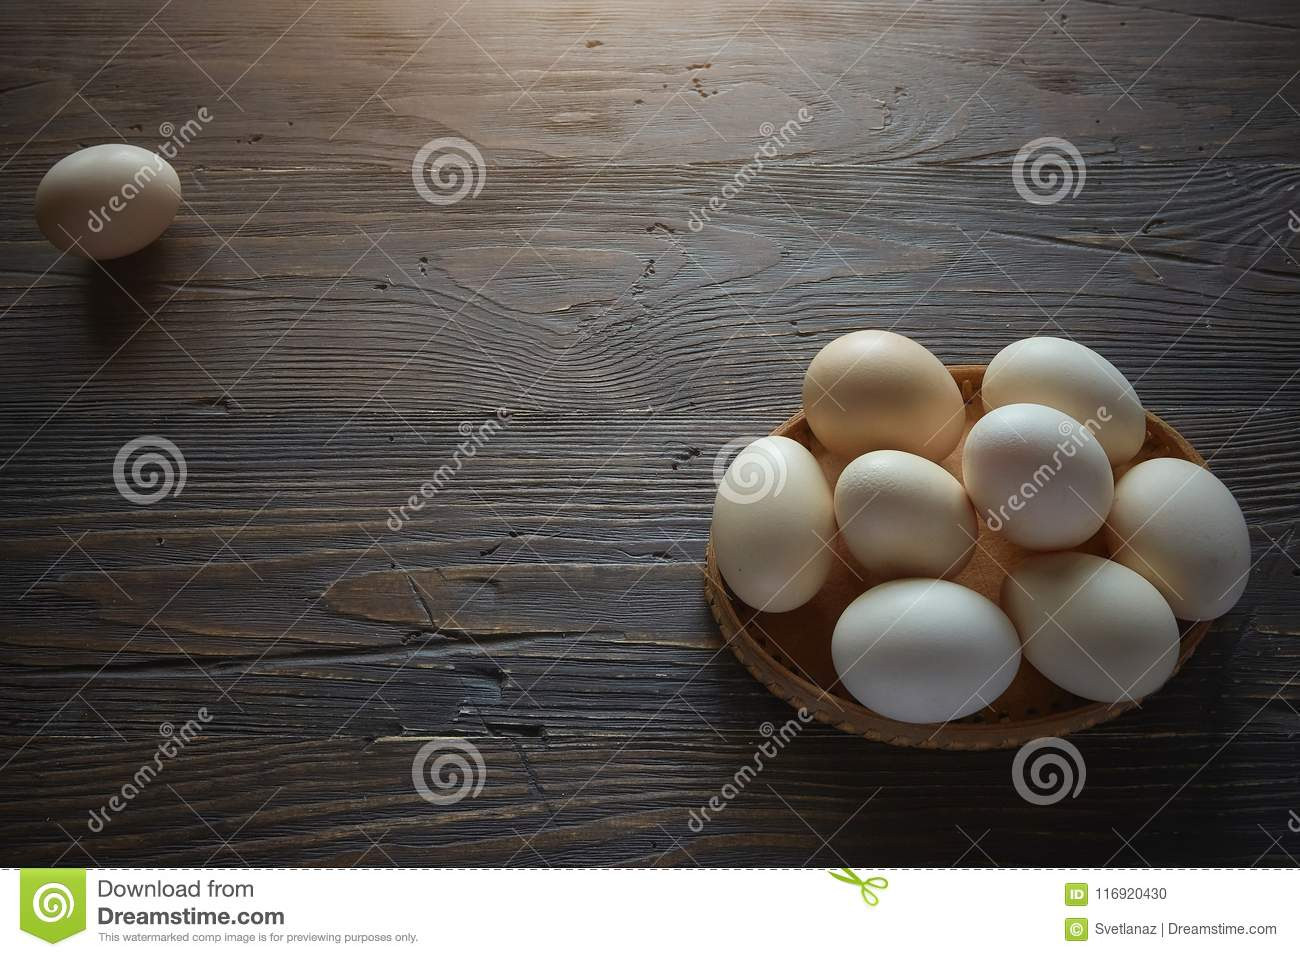 Forum on this topic: Why chicken eggs are (still) good for , why-chicken-eggs-are-still-good-for/